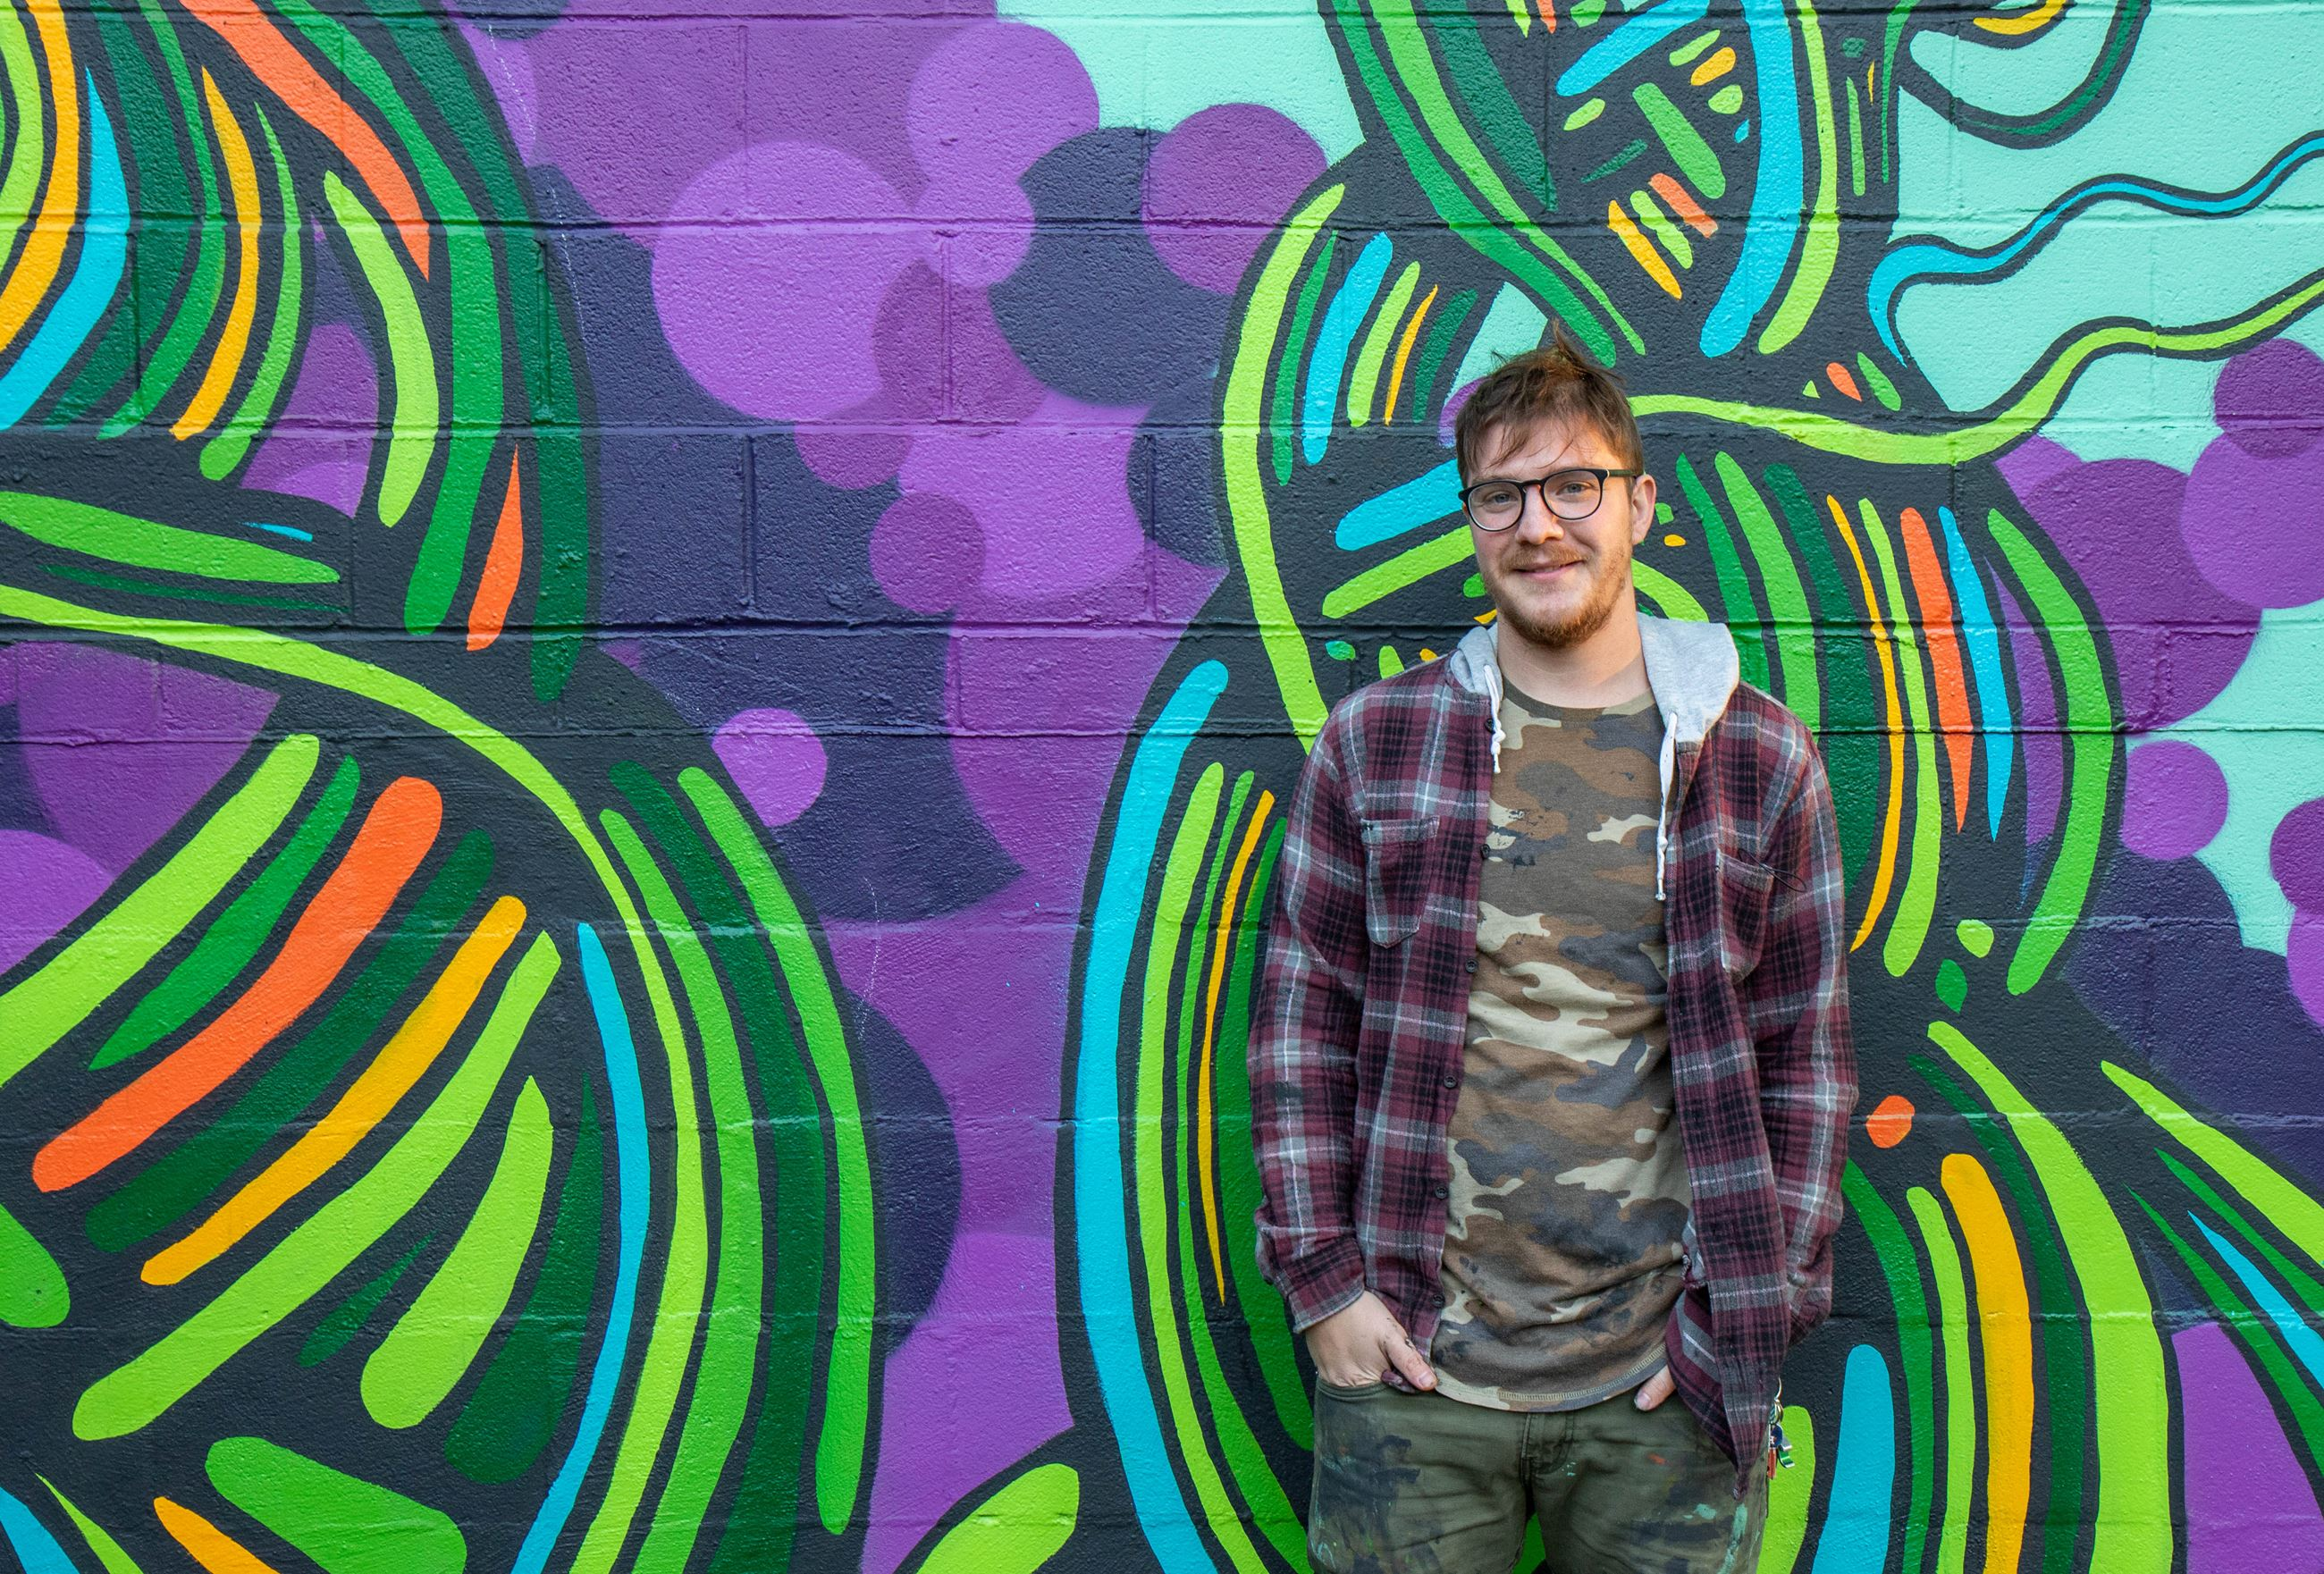 A man wearing glasses, a camo shirt and plaid jacket stands in front of a brightly colored mural of